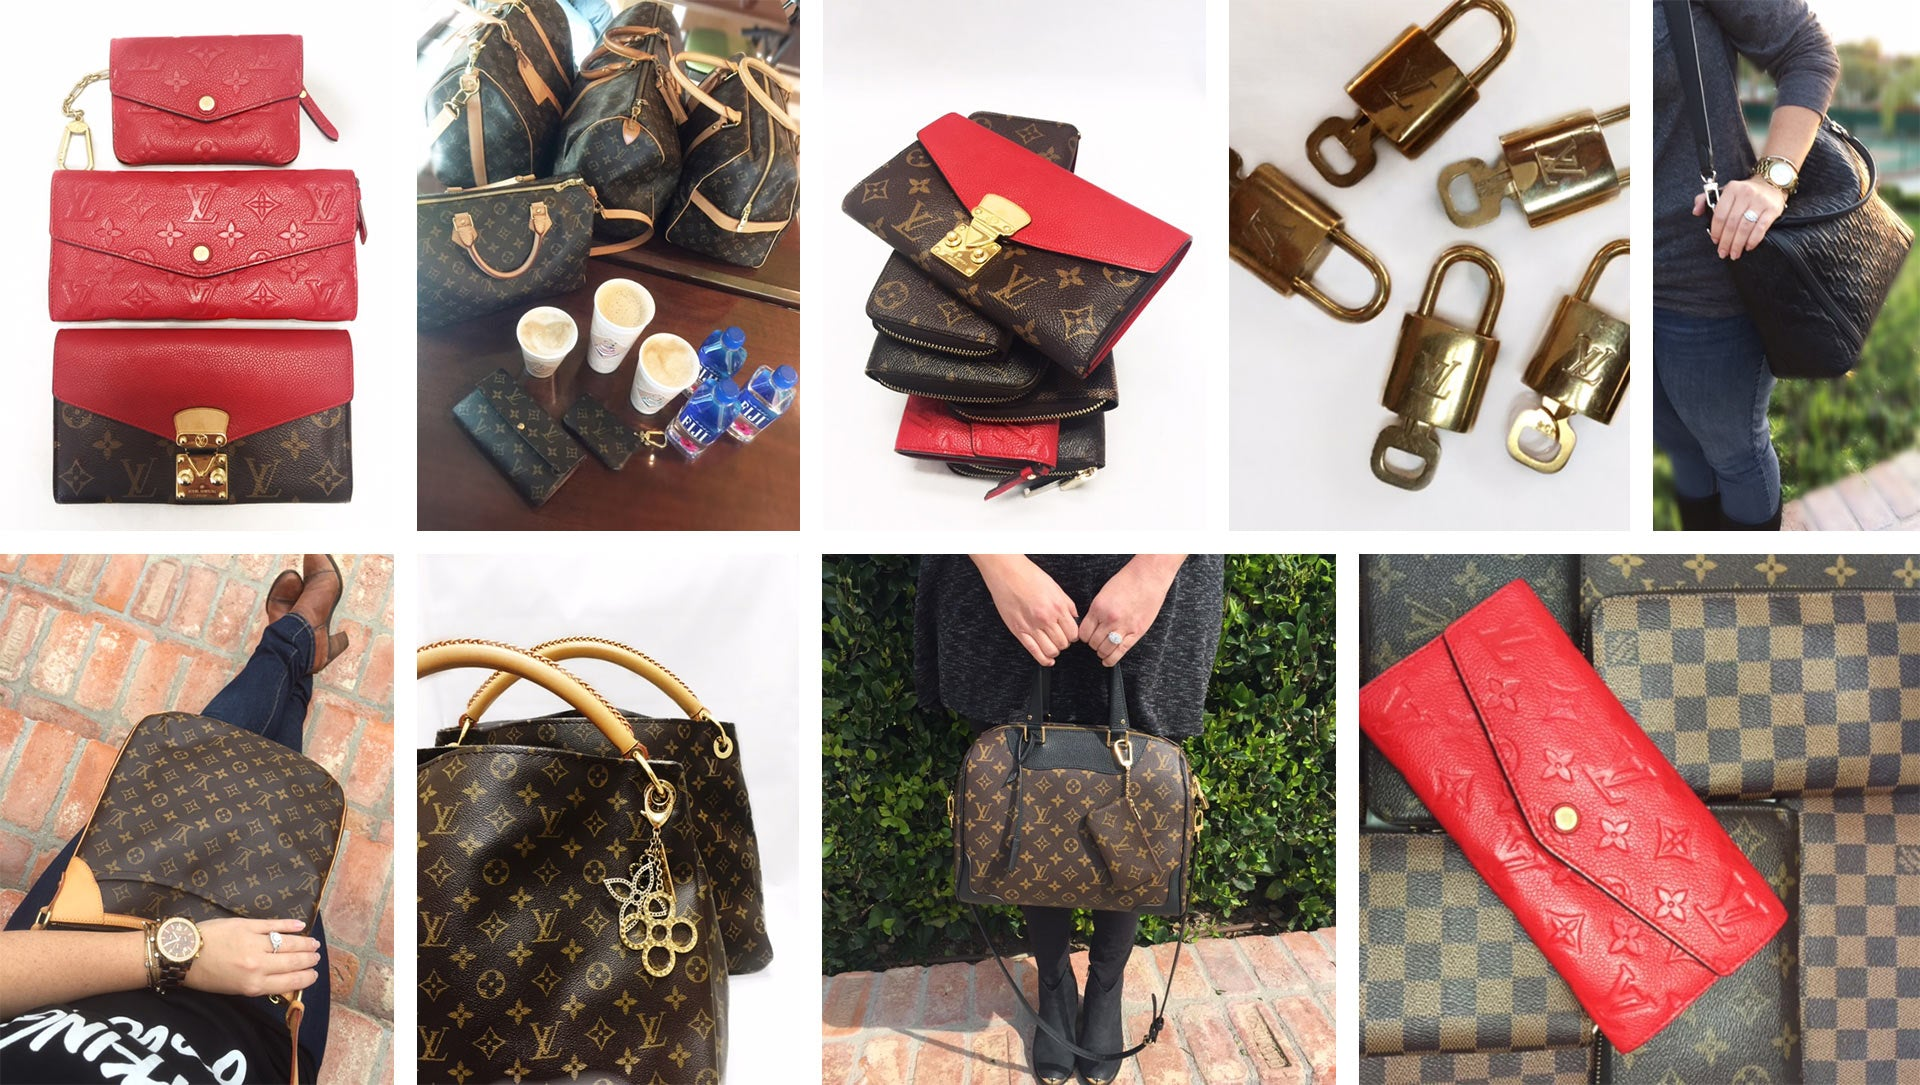 Louis Vuitton, Wallets and Accessories